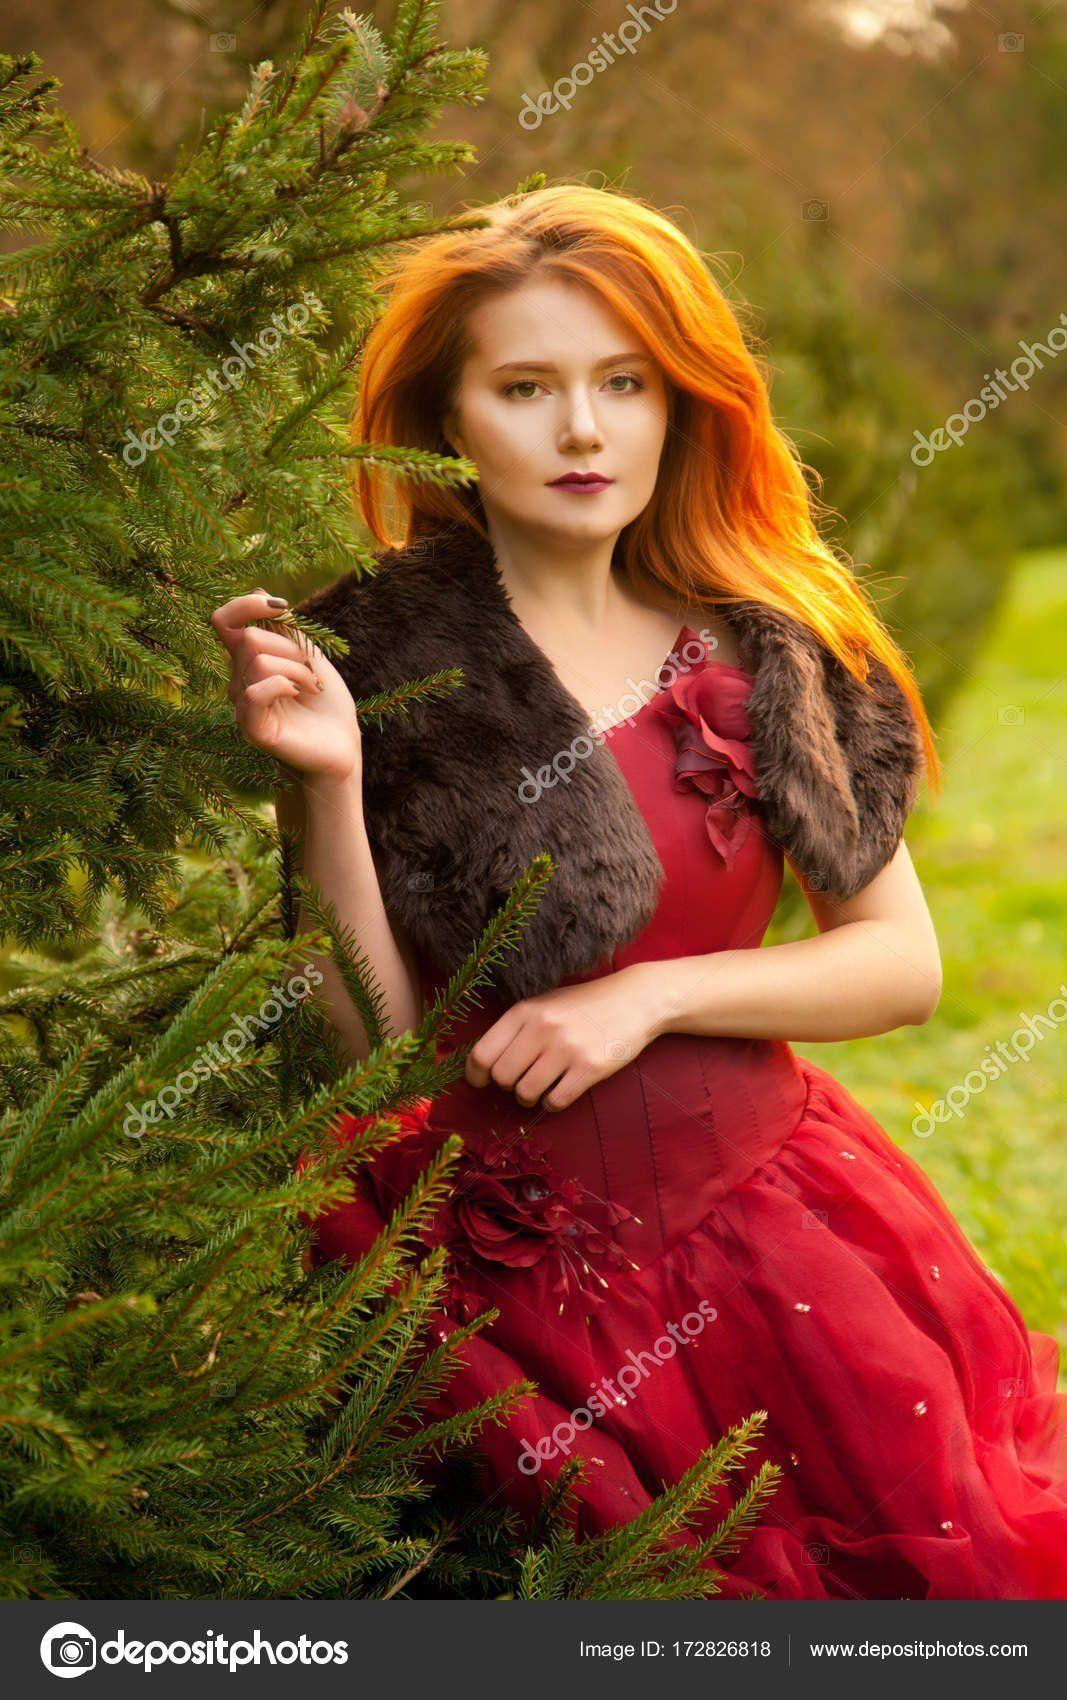 Vice reccomend Young redhead in an evening dress